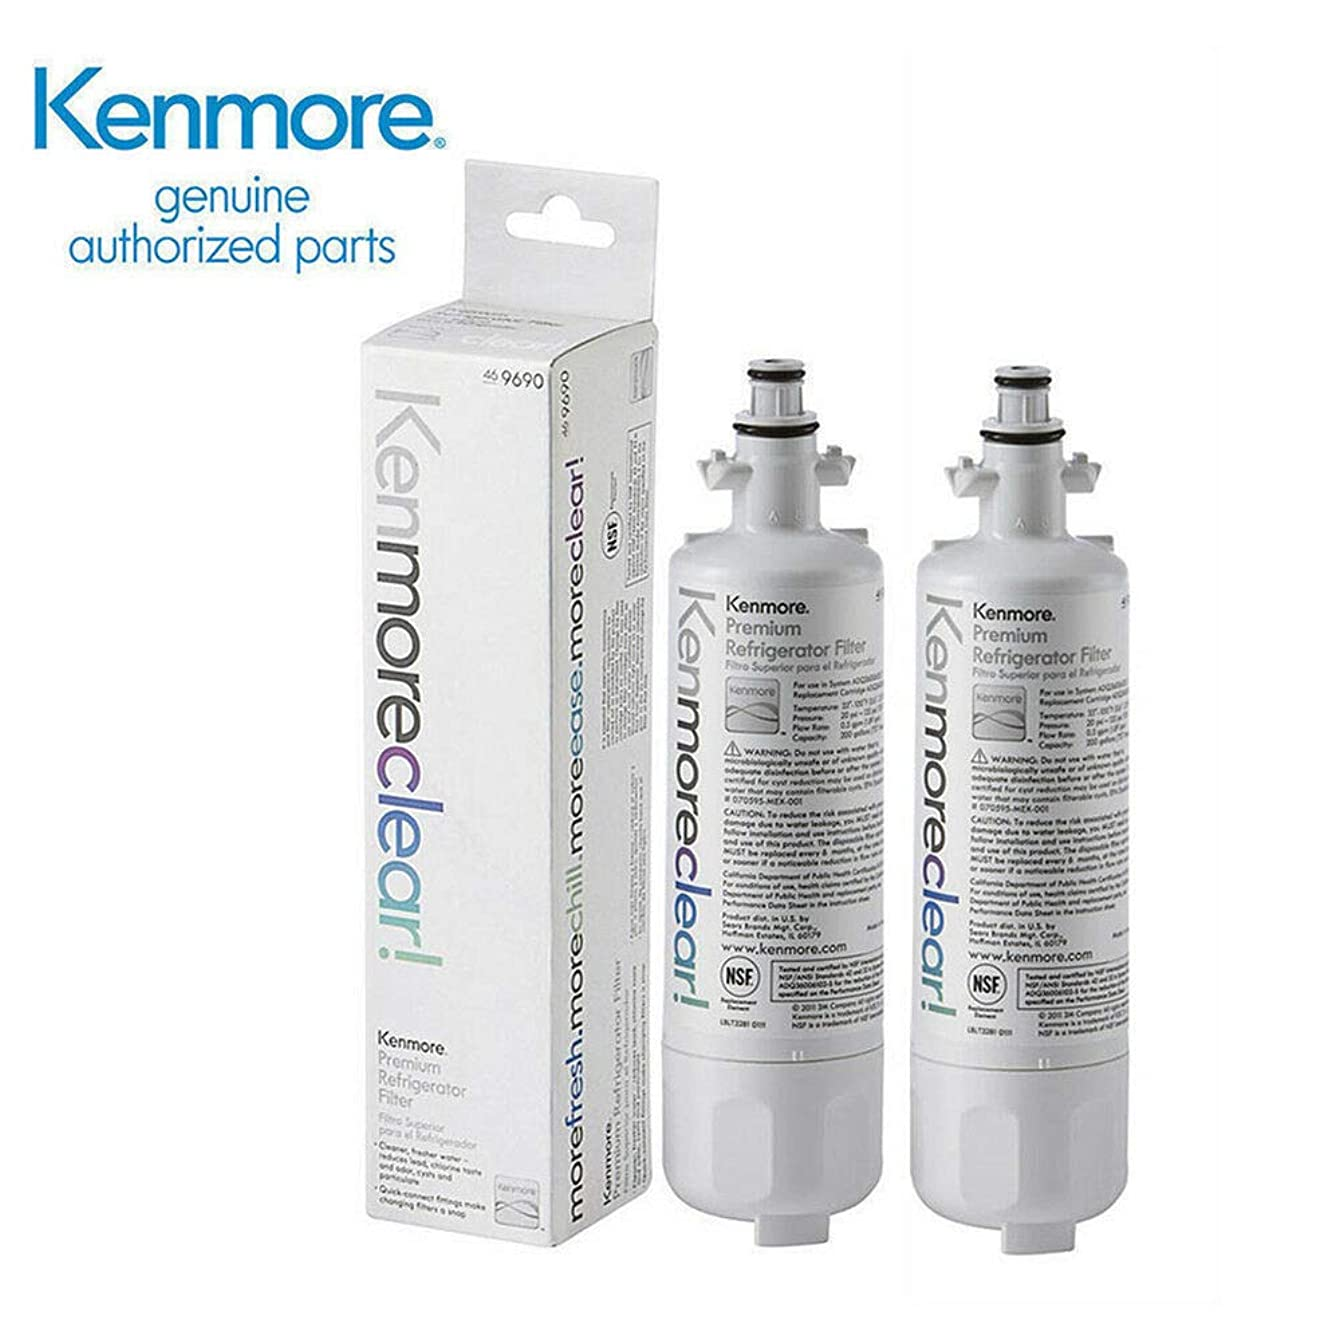 Happy-shoP 2 Pack 469690, 9690, DQ36006101, LT700P Refrigerator Water Filter